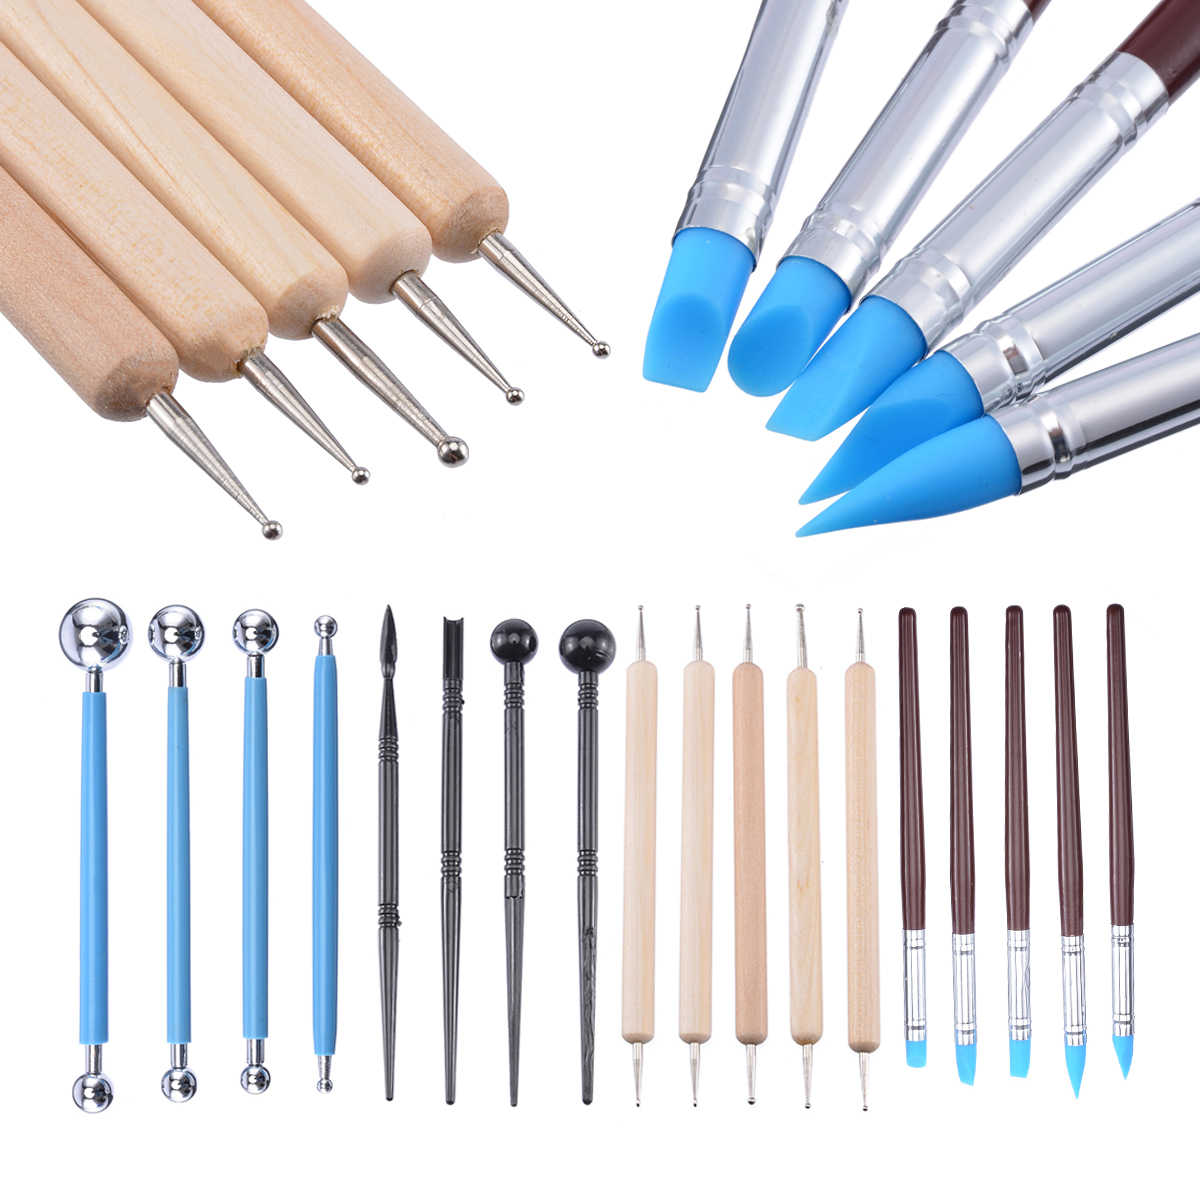 18PCS New Wooden Handle Clay Sculpting Carving Pottery Tools Kit Polymer Modeling Graver Craft DIY Sculpture Ceramics Tool